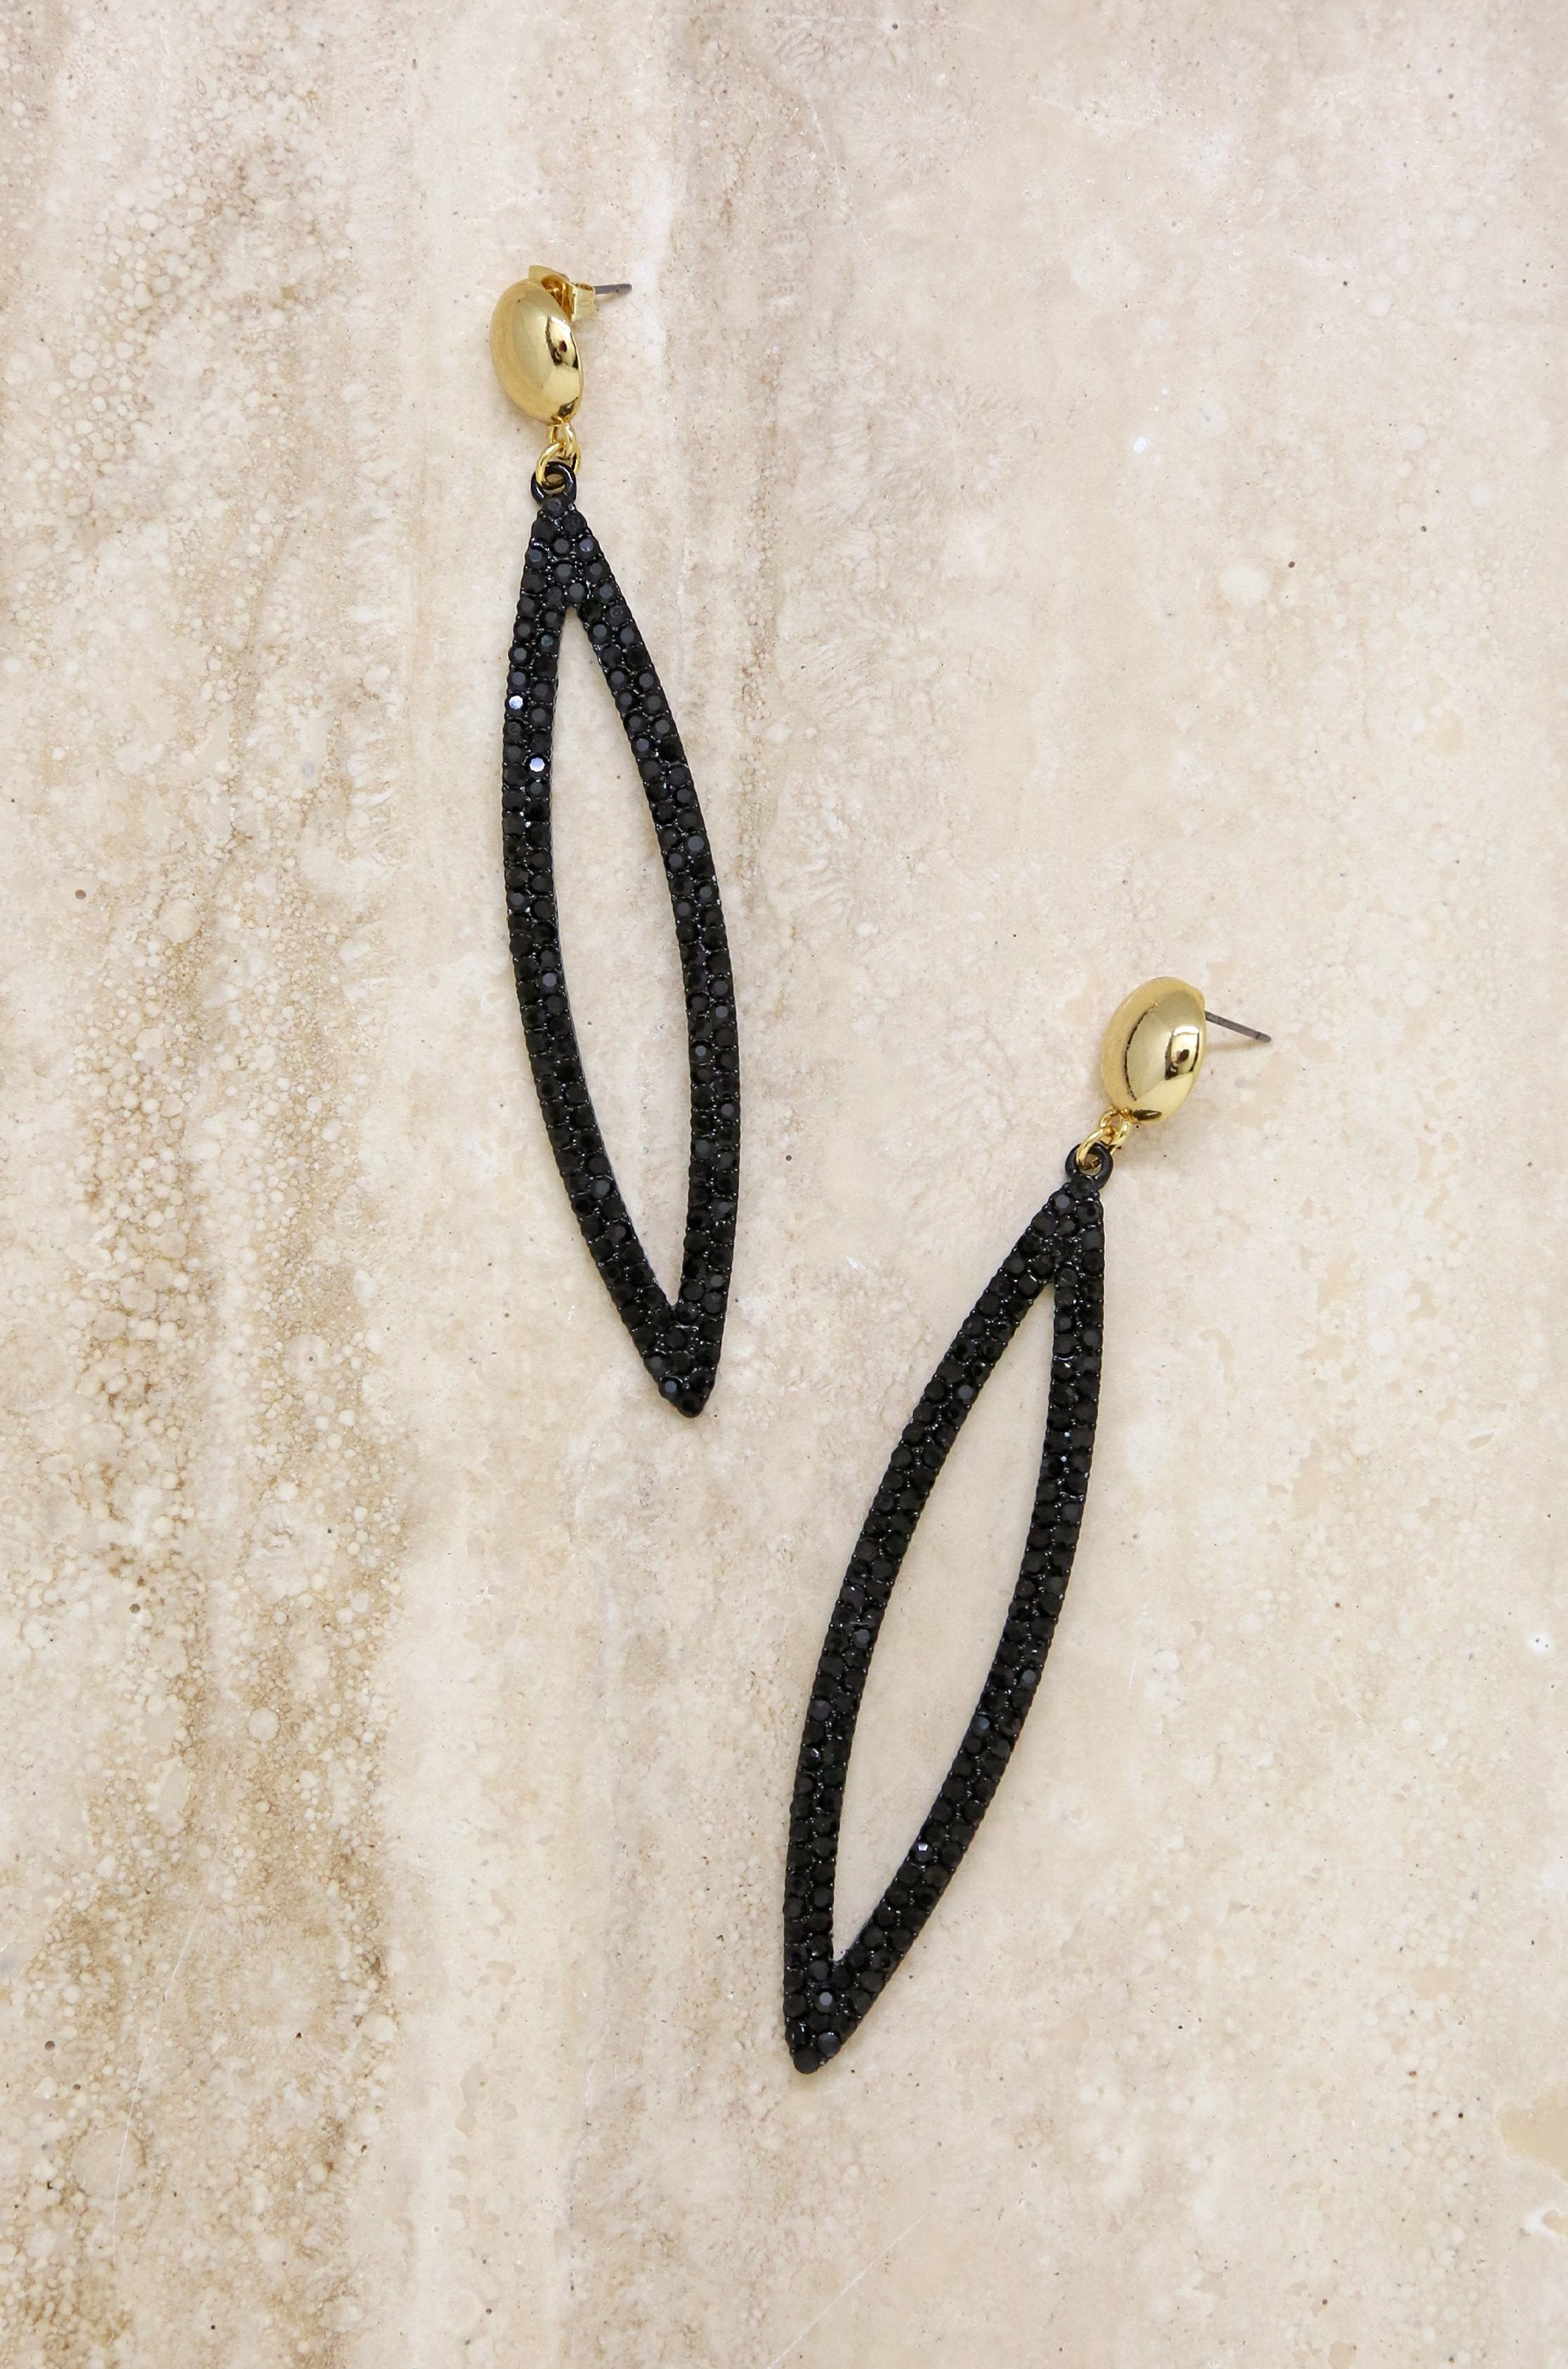 Black Crystal Oval Drop 18k Gold Plated Earrings - Vanessa Stylez Boutique